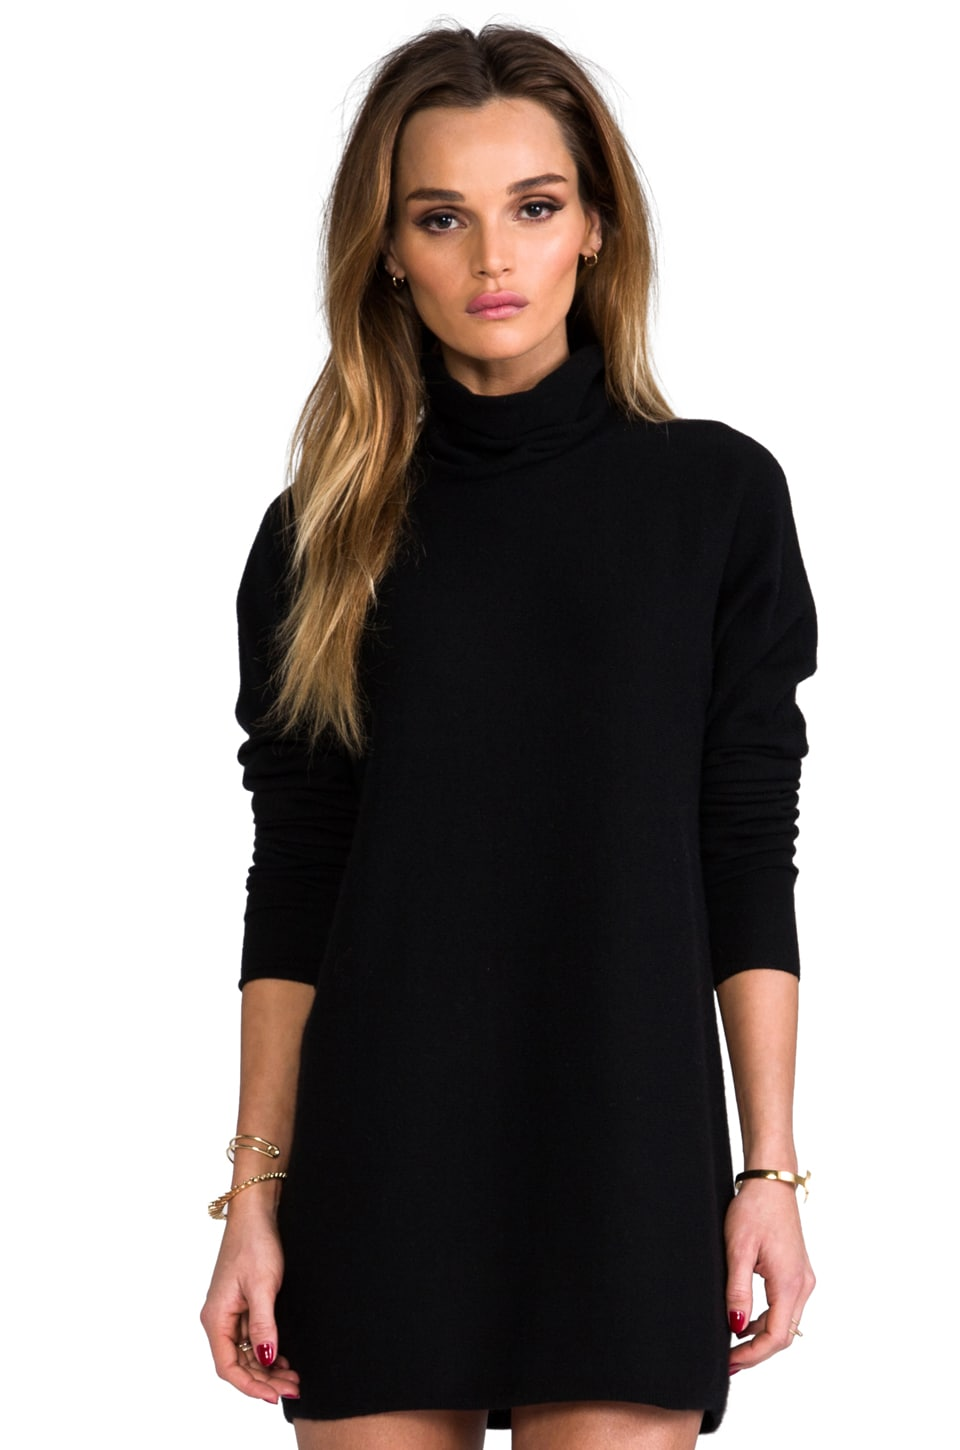 DemyLee Claire Cashmere Tunic in Black